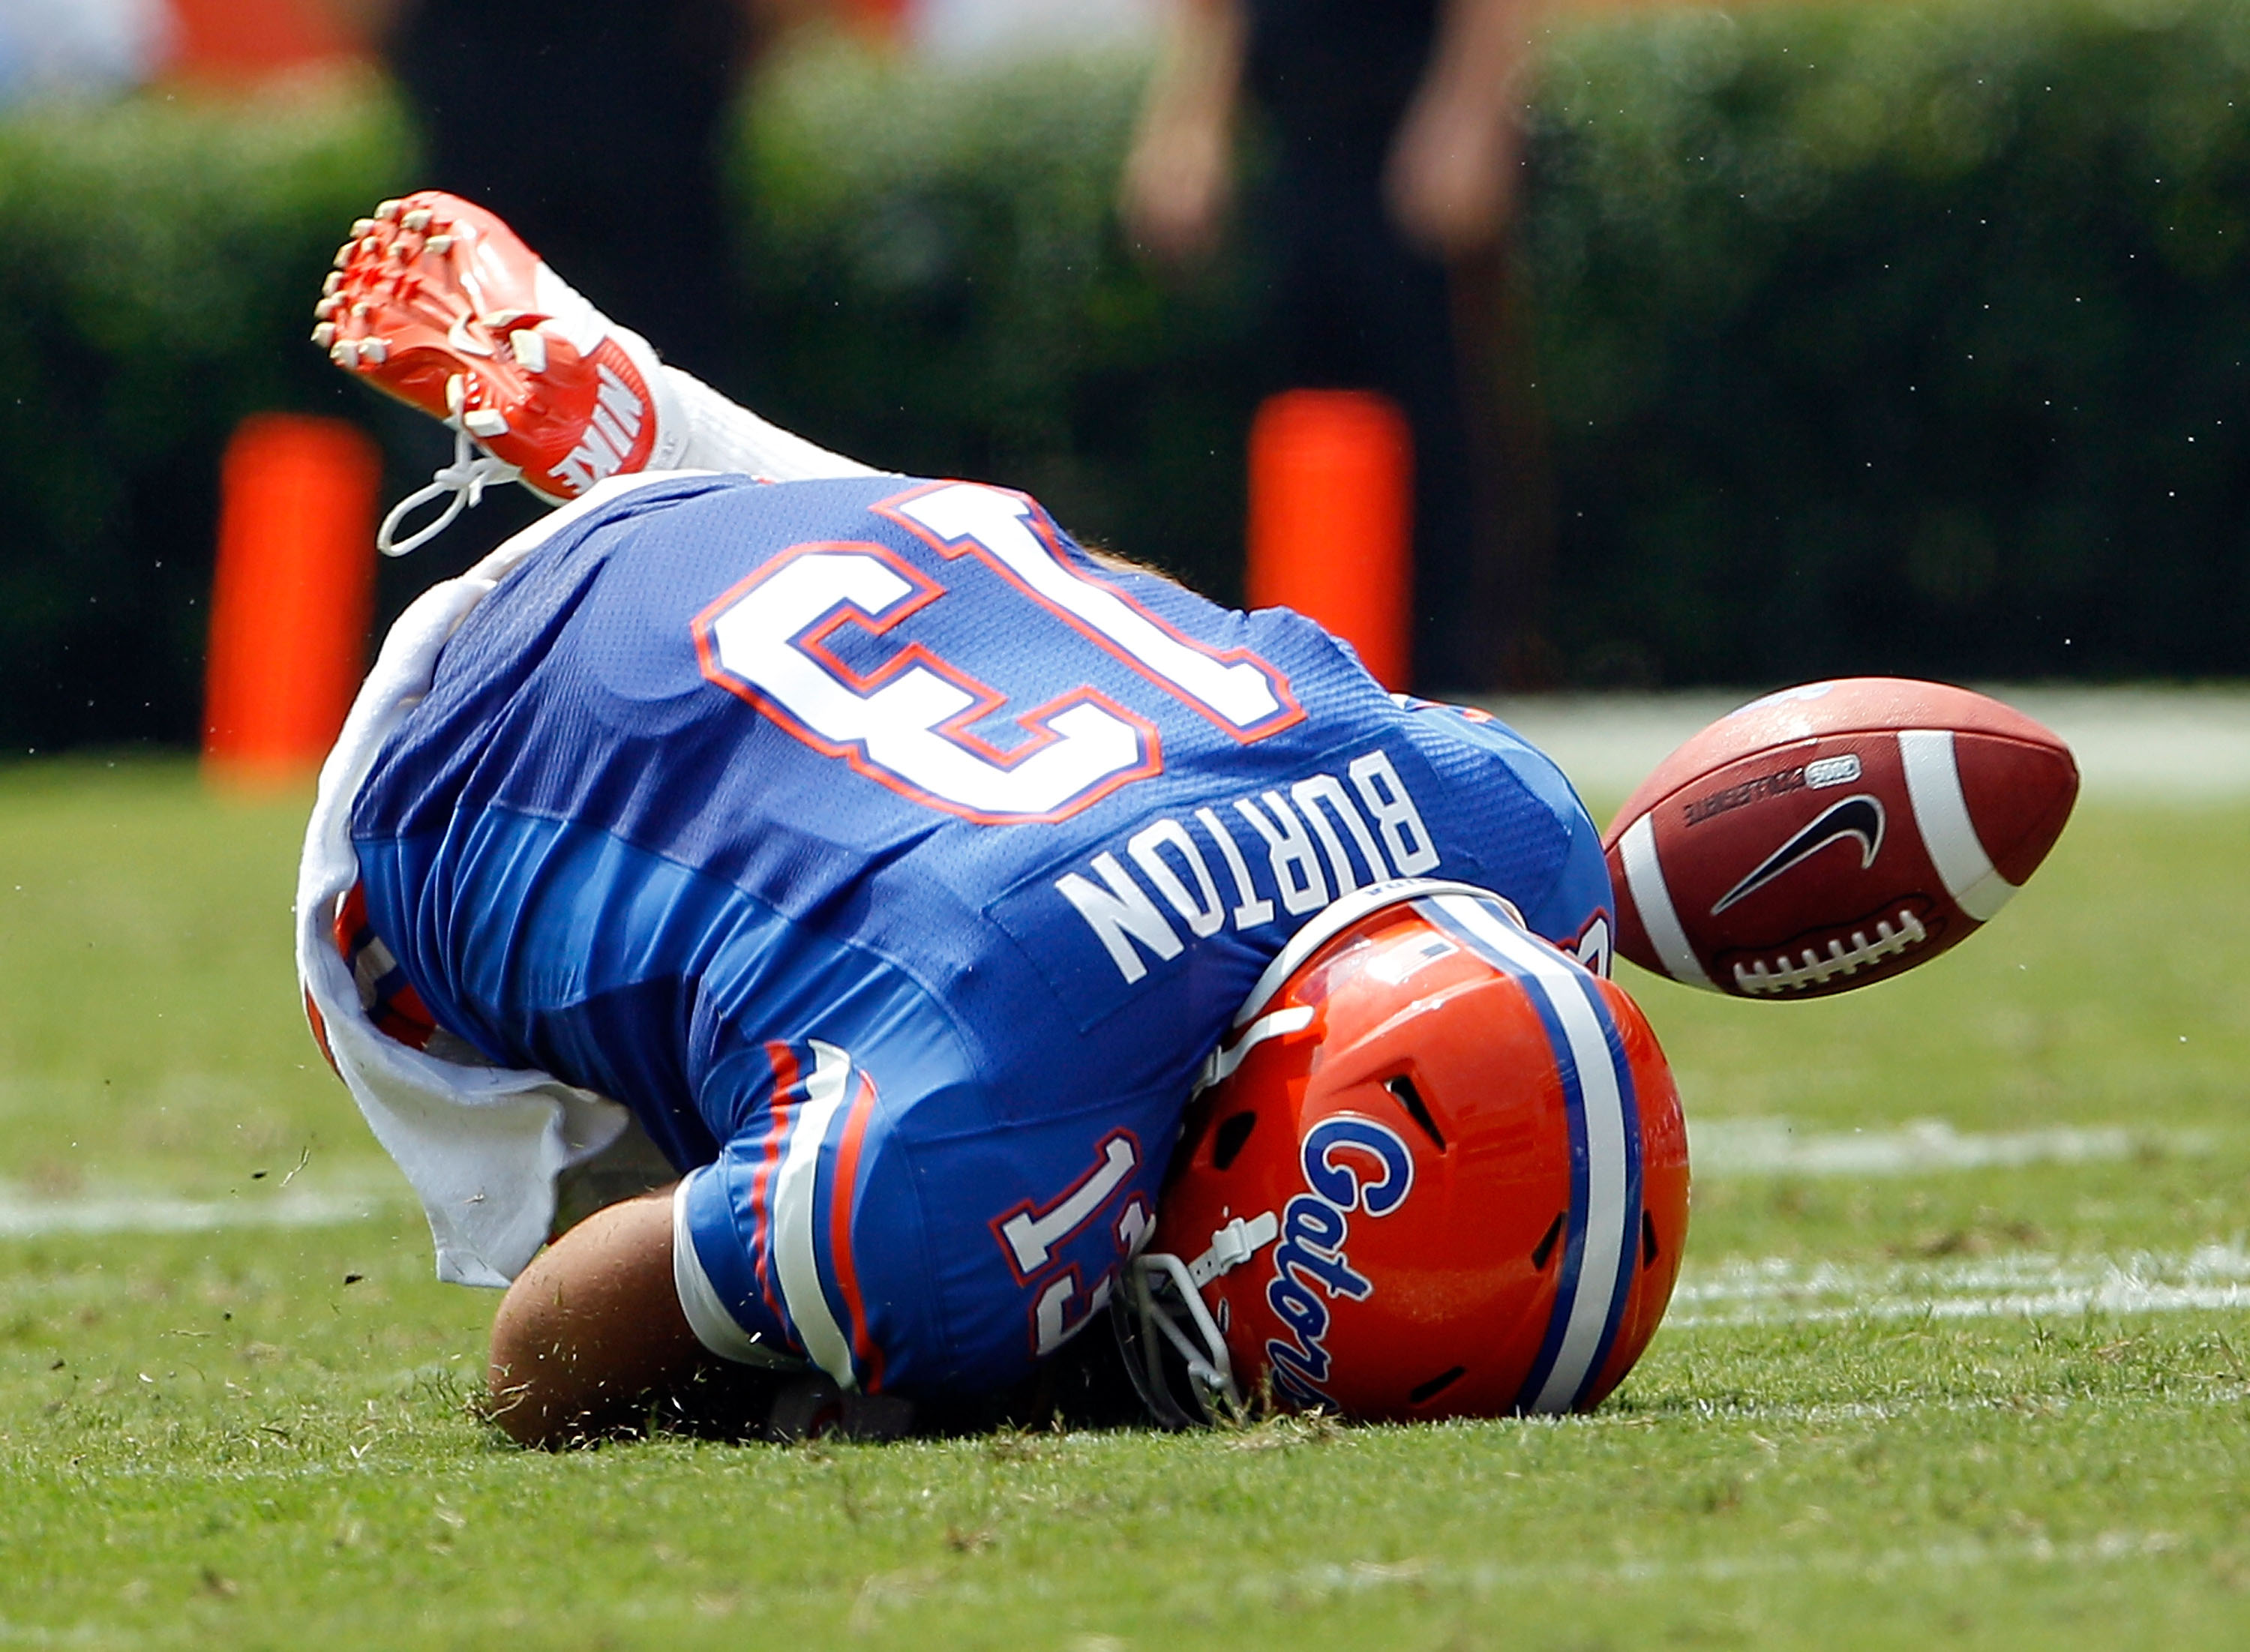 GAINESVILLE, FL - SEPTEMBER 04:  Trey Burton #13 of the Florida Gators attempts a reception against  the Miami University RedHawks at Ben Hill Griffin Stadium on September 4, 2010 in Gainesville, Florida.  (Photo by Sam Greenwood/Getty Images)